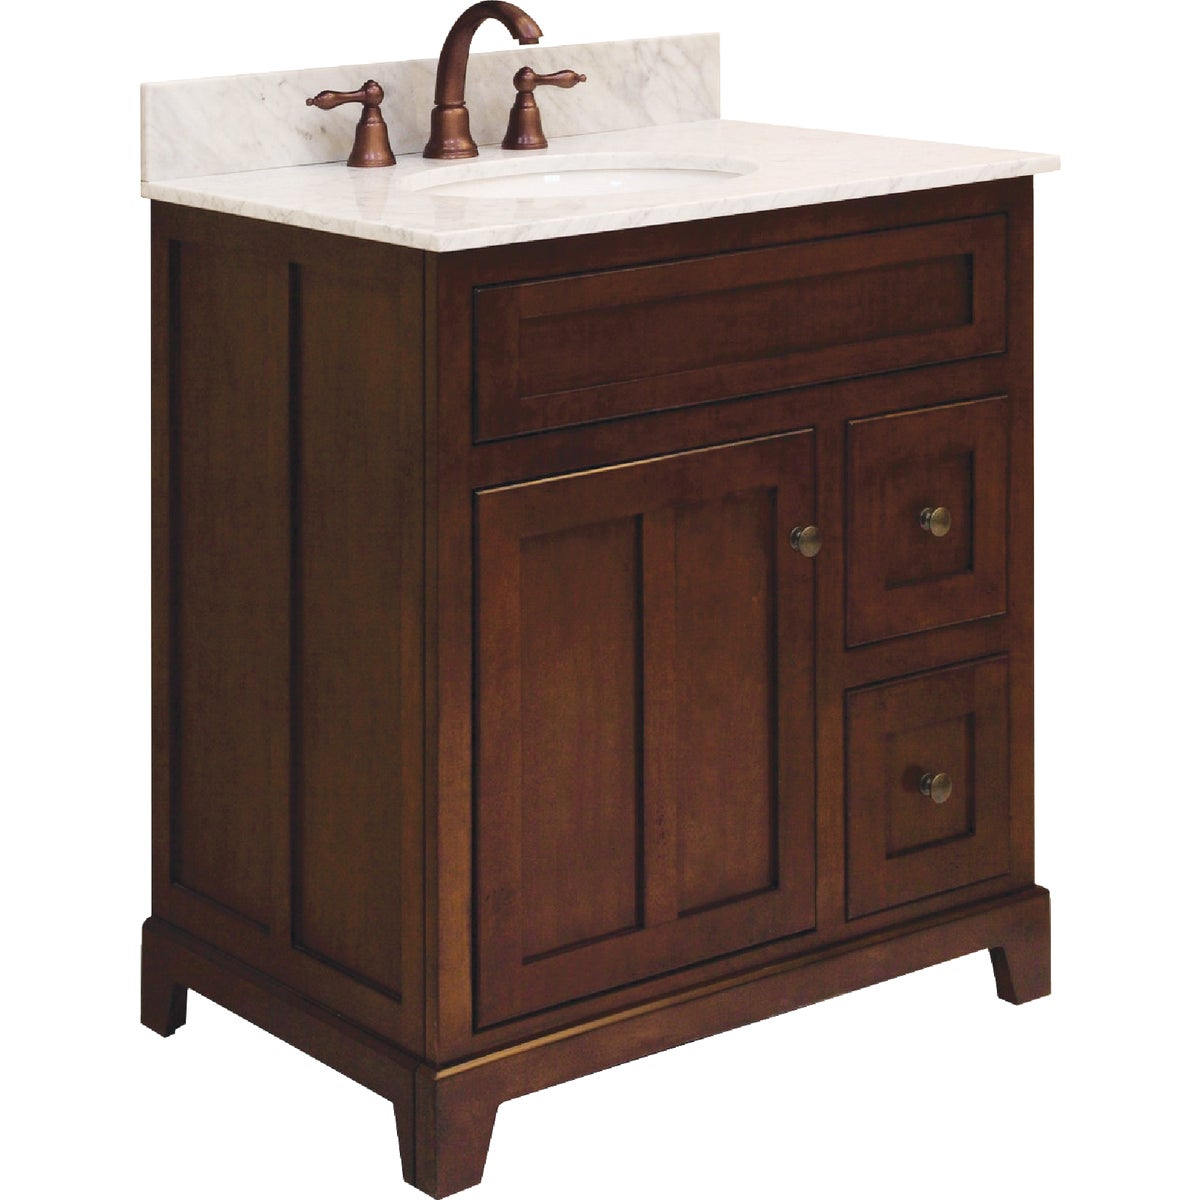 "30"" GRAND HAVEN VANITY - GH3021D by Sunnywood Products"